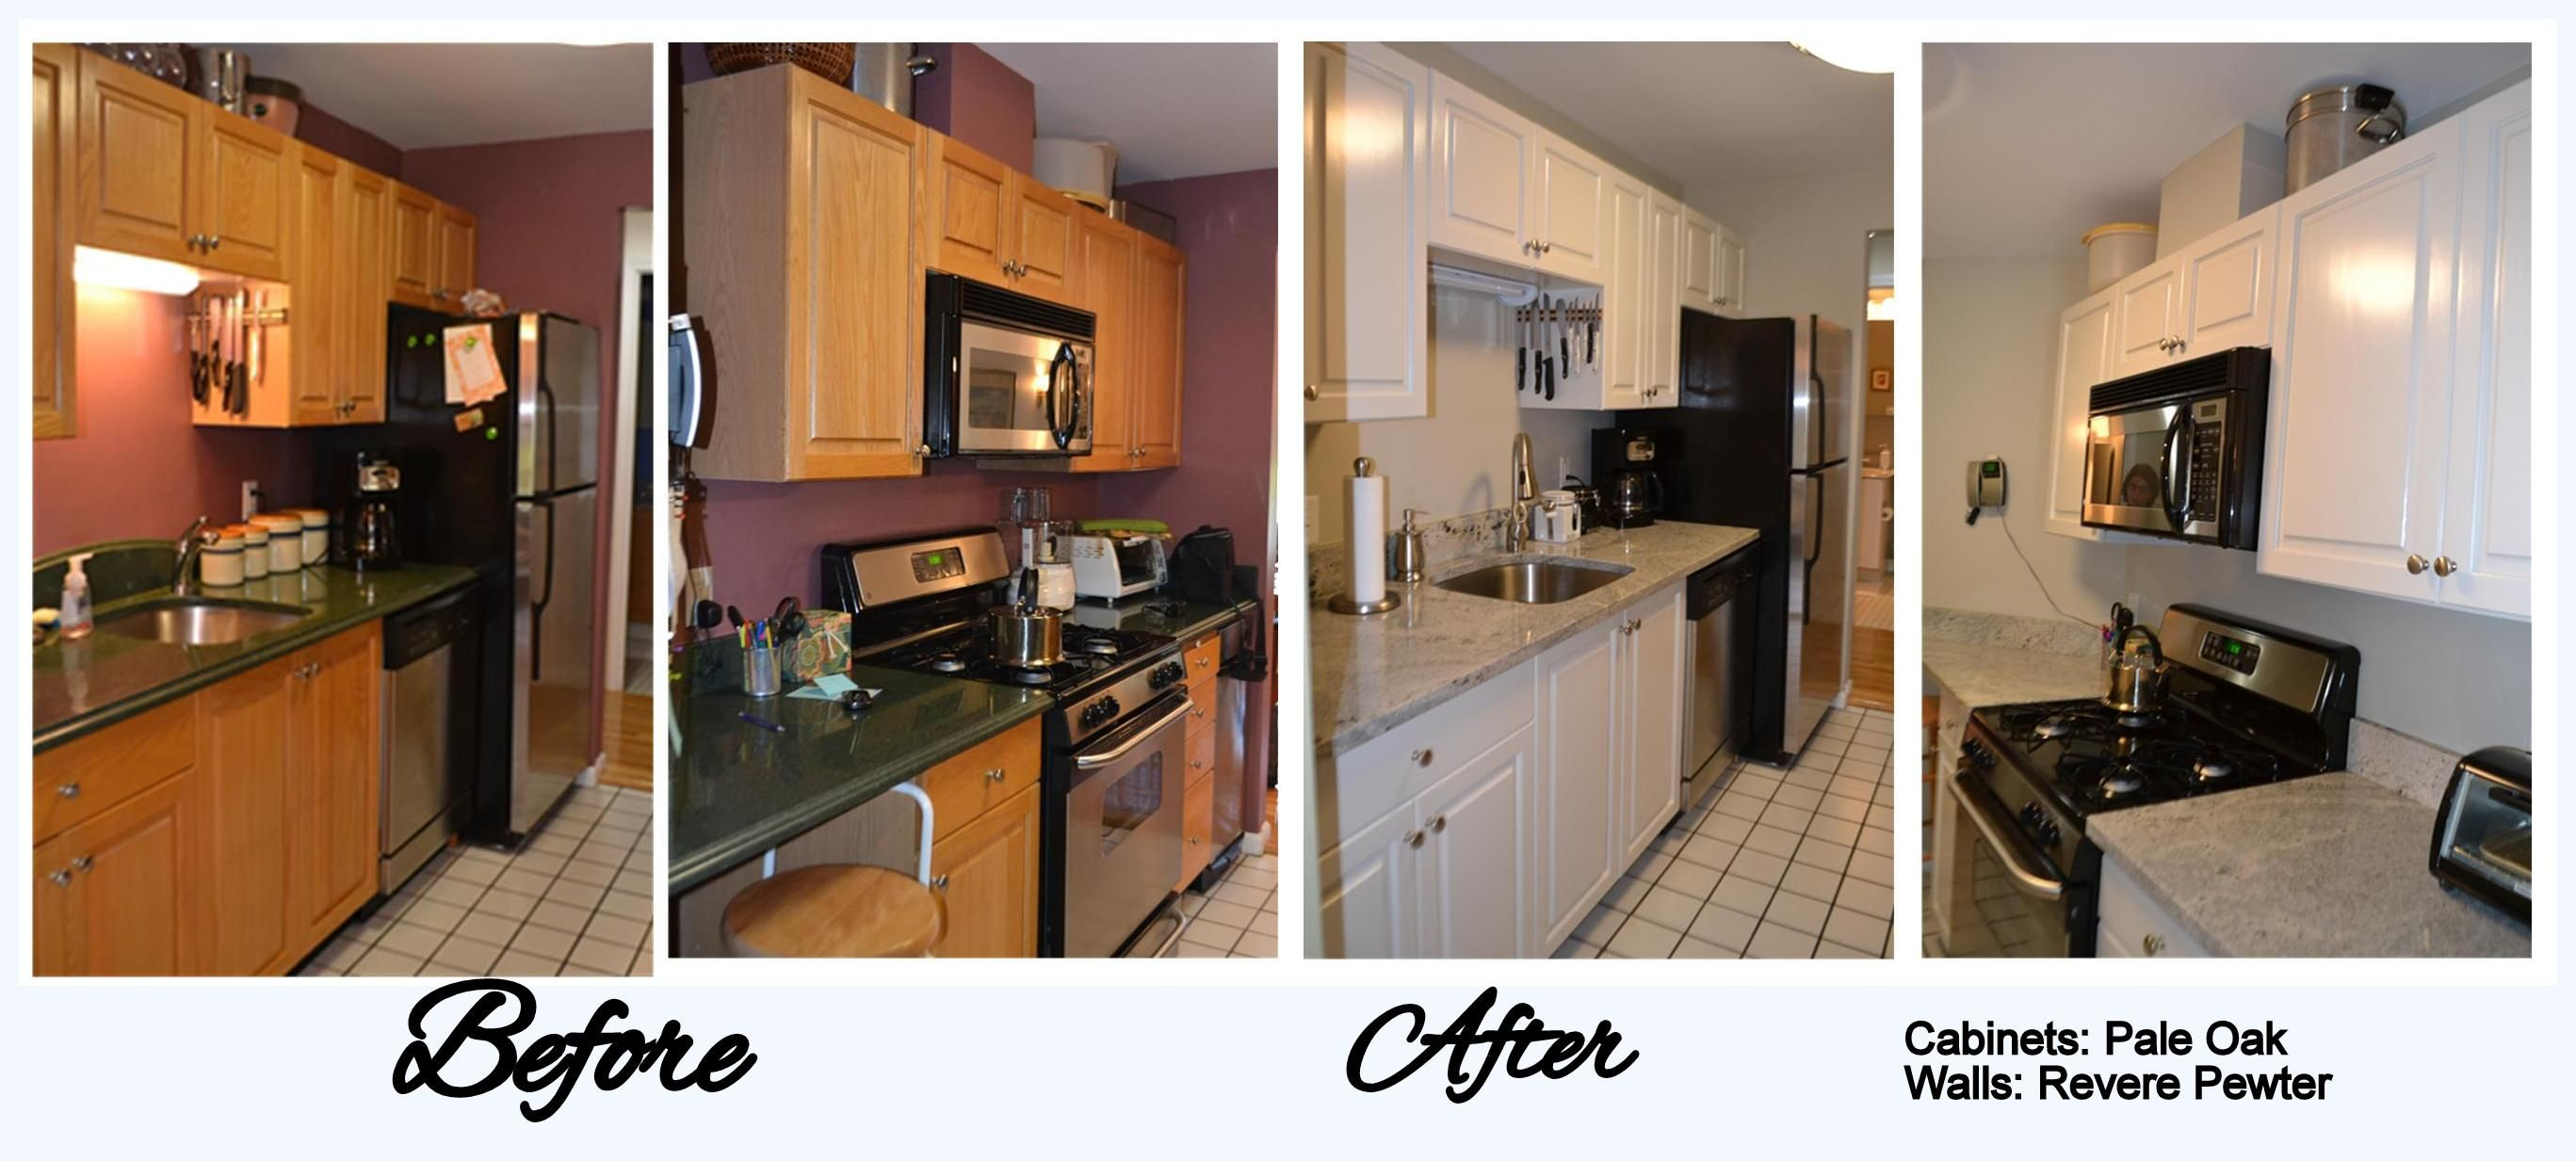 Kitchen Cabinet Laminate Refacing Fascinating Kitchen Cabinet Refacing Before And After Photos  Google Search . Design Decoration